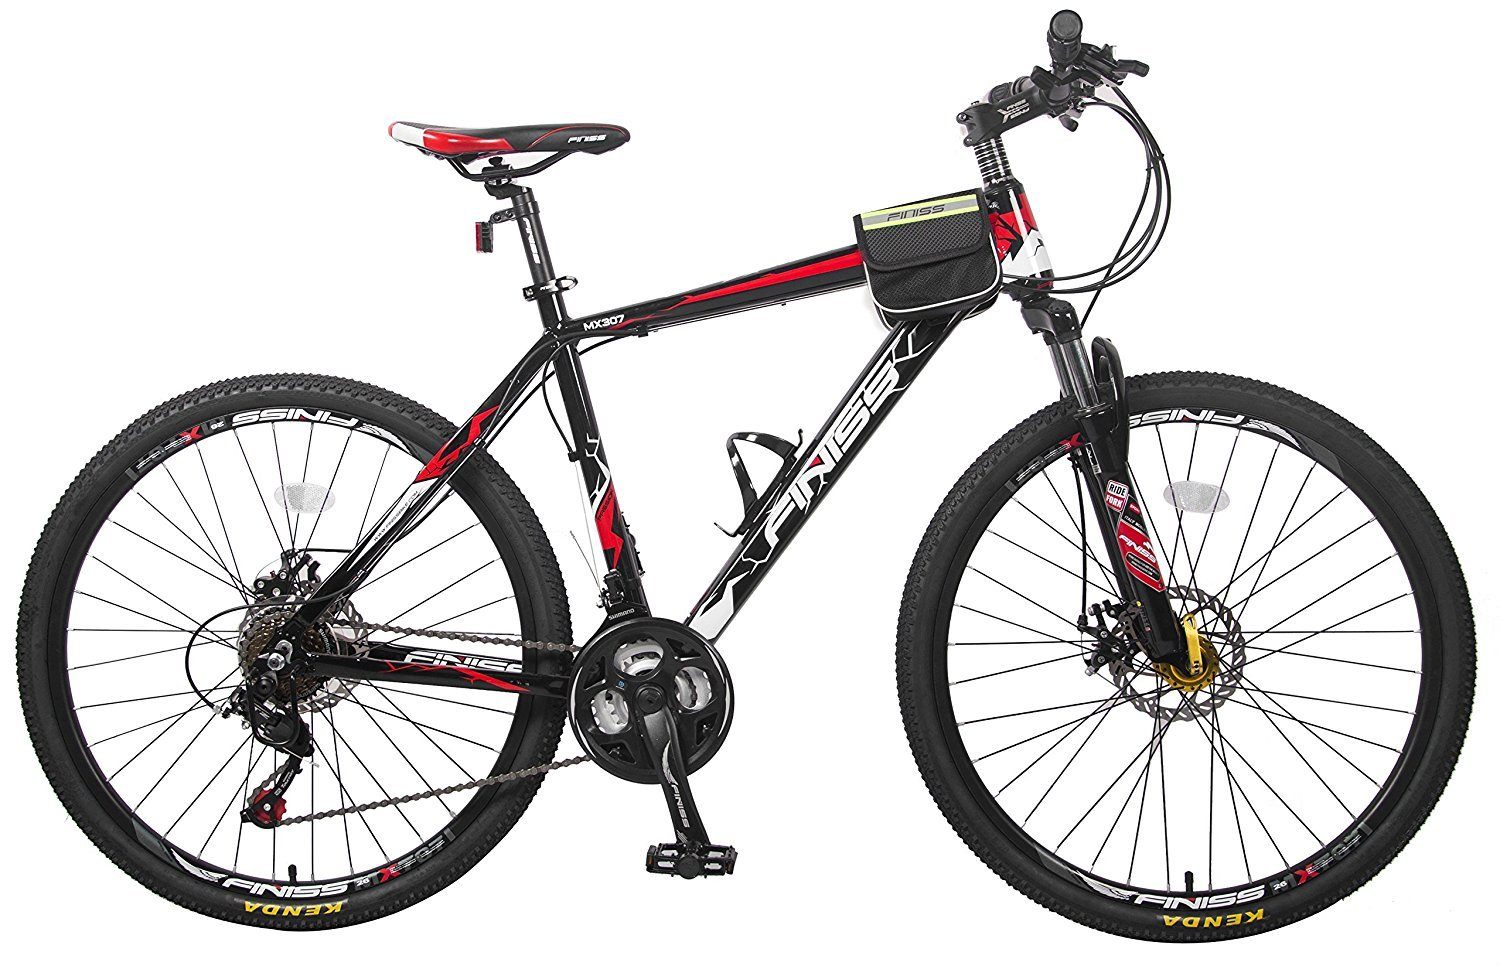 Merax-Finiss-26-Aluminum-21-Speed-Mountain-Bike-review